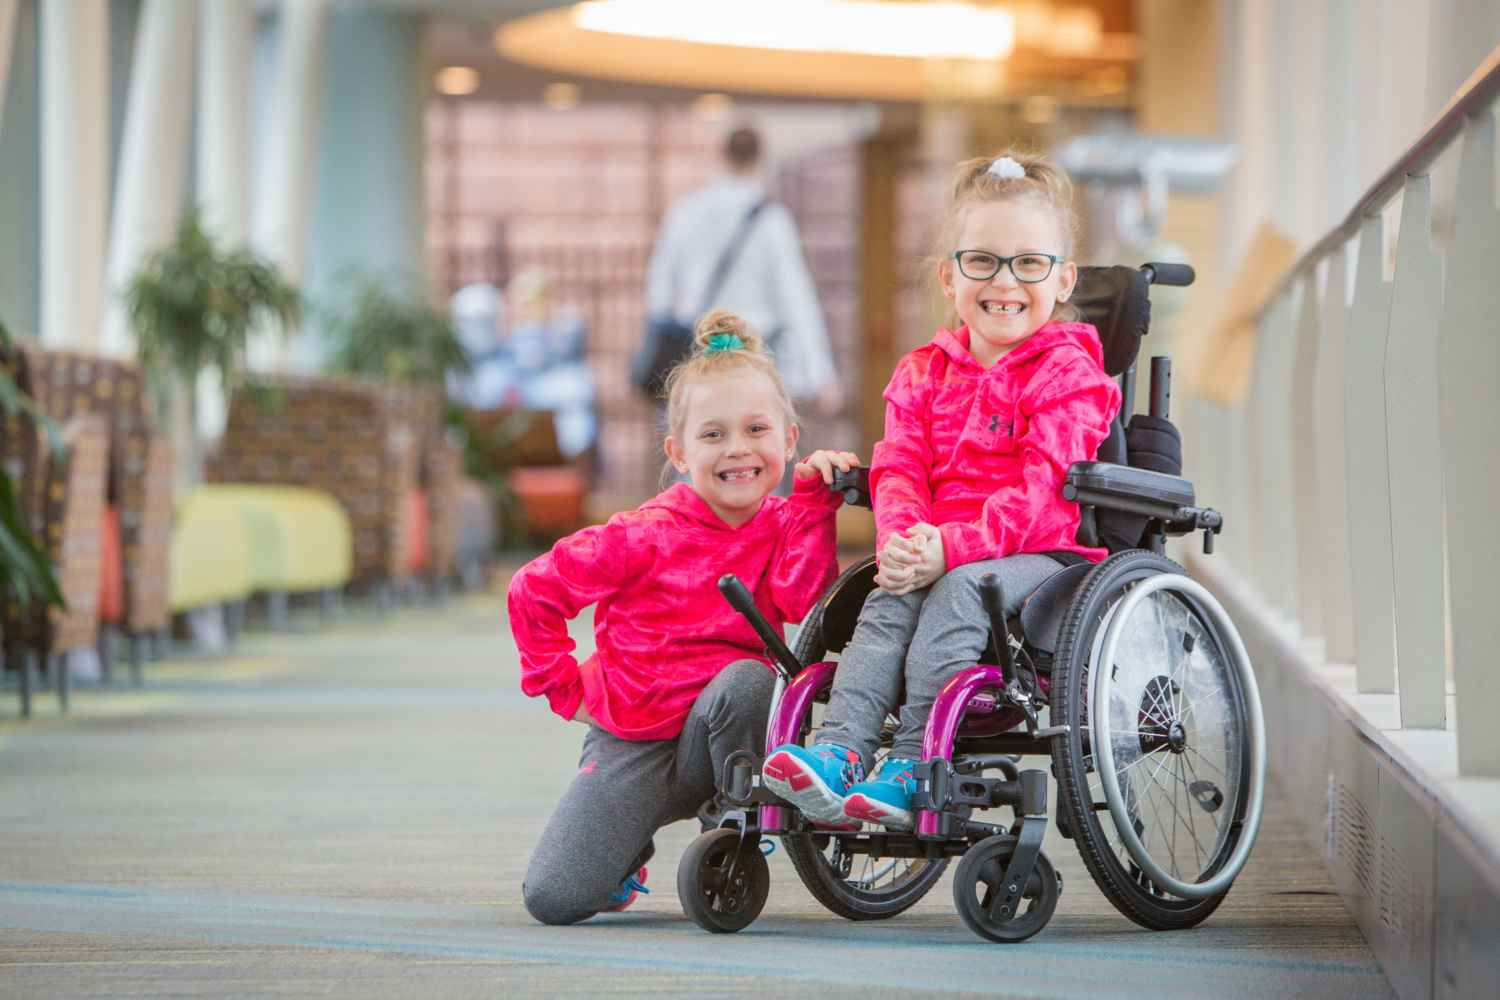 Kaidyn, who receives care for cerebral palsy, and her twin sister Keatyn.